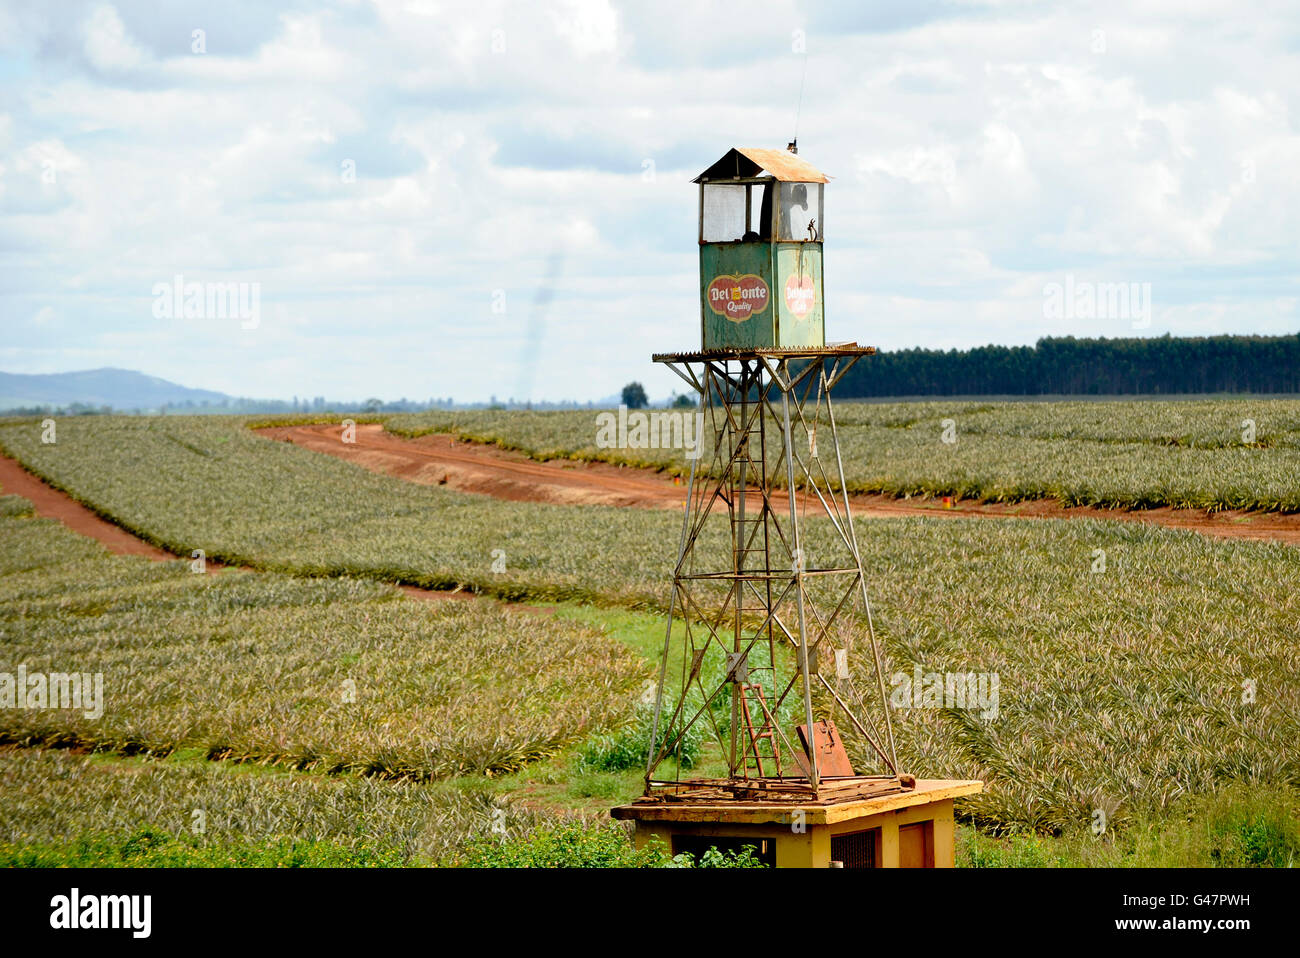 KENYA Del Monte pineapple plantation near Thika / Kenia Anannas Farm von Del Monte Stock Photo